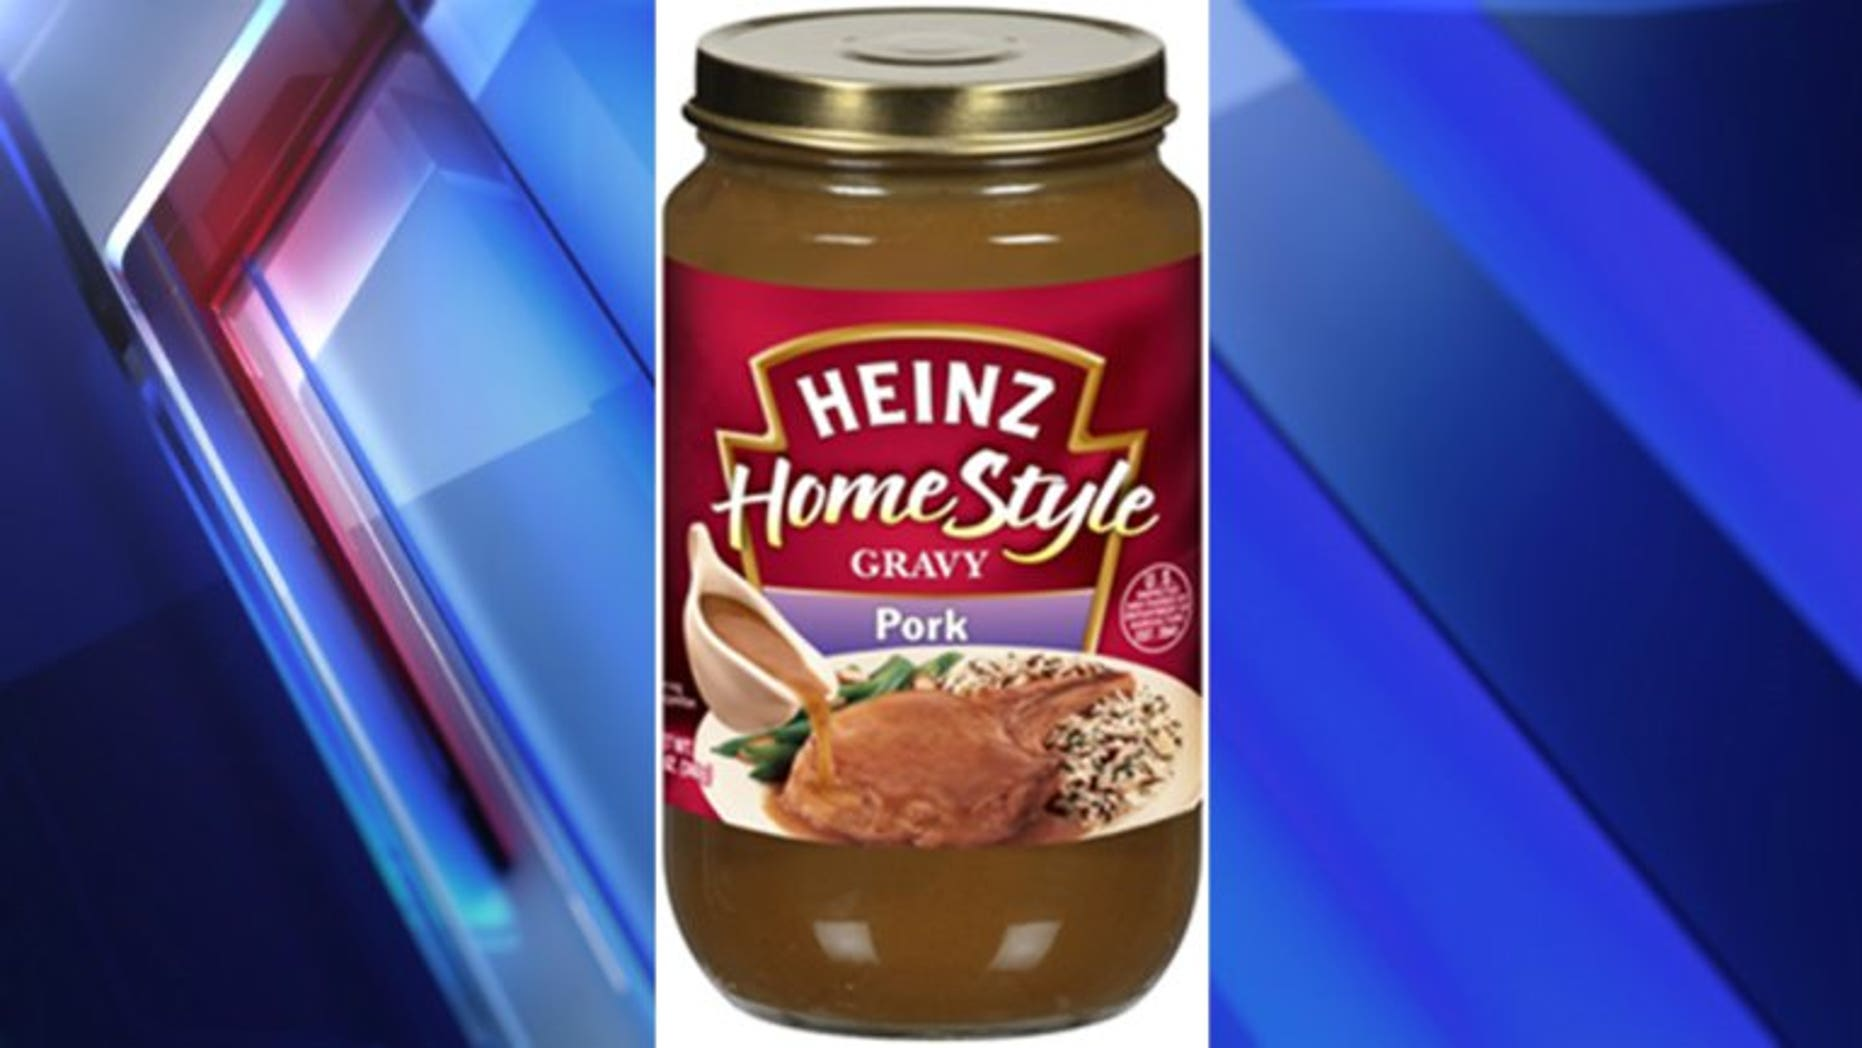 Heinz issued a recall for HomeStyle Bistro Au Jus Gravy